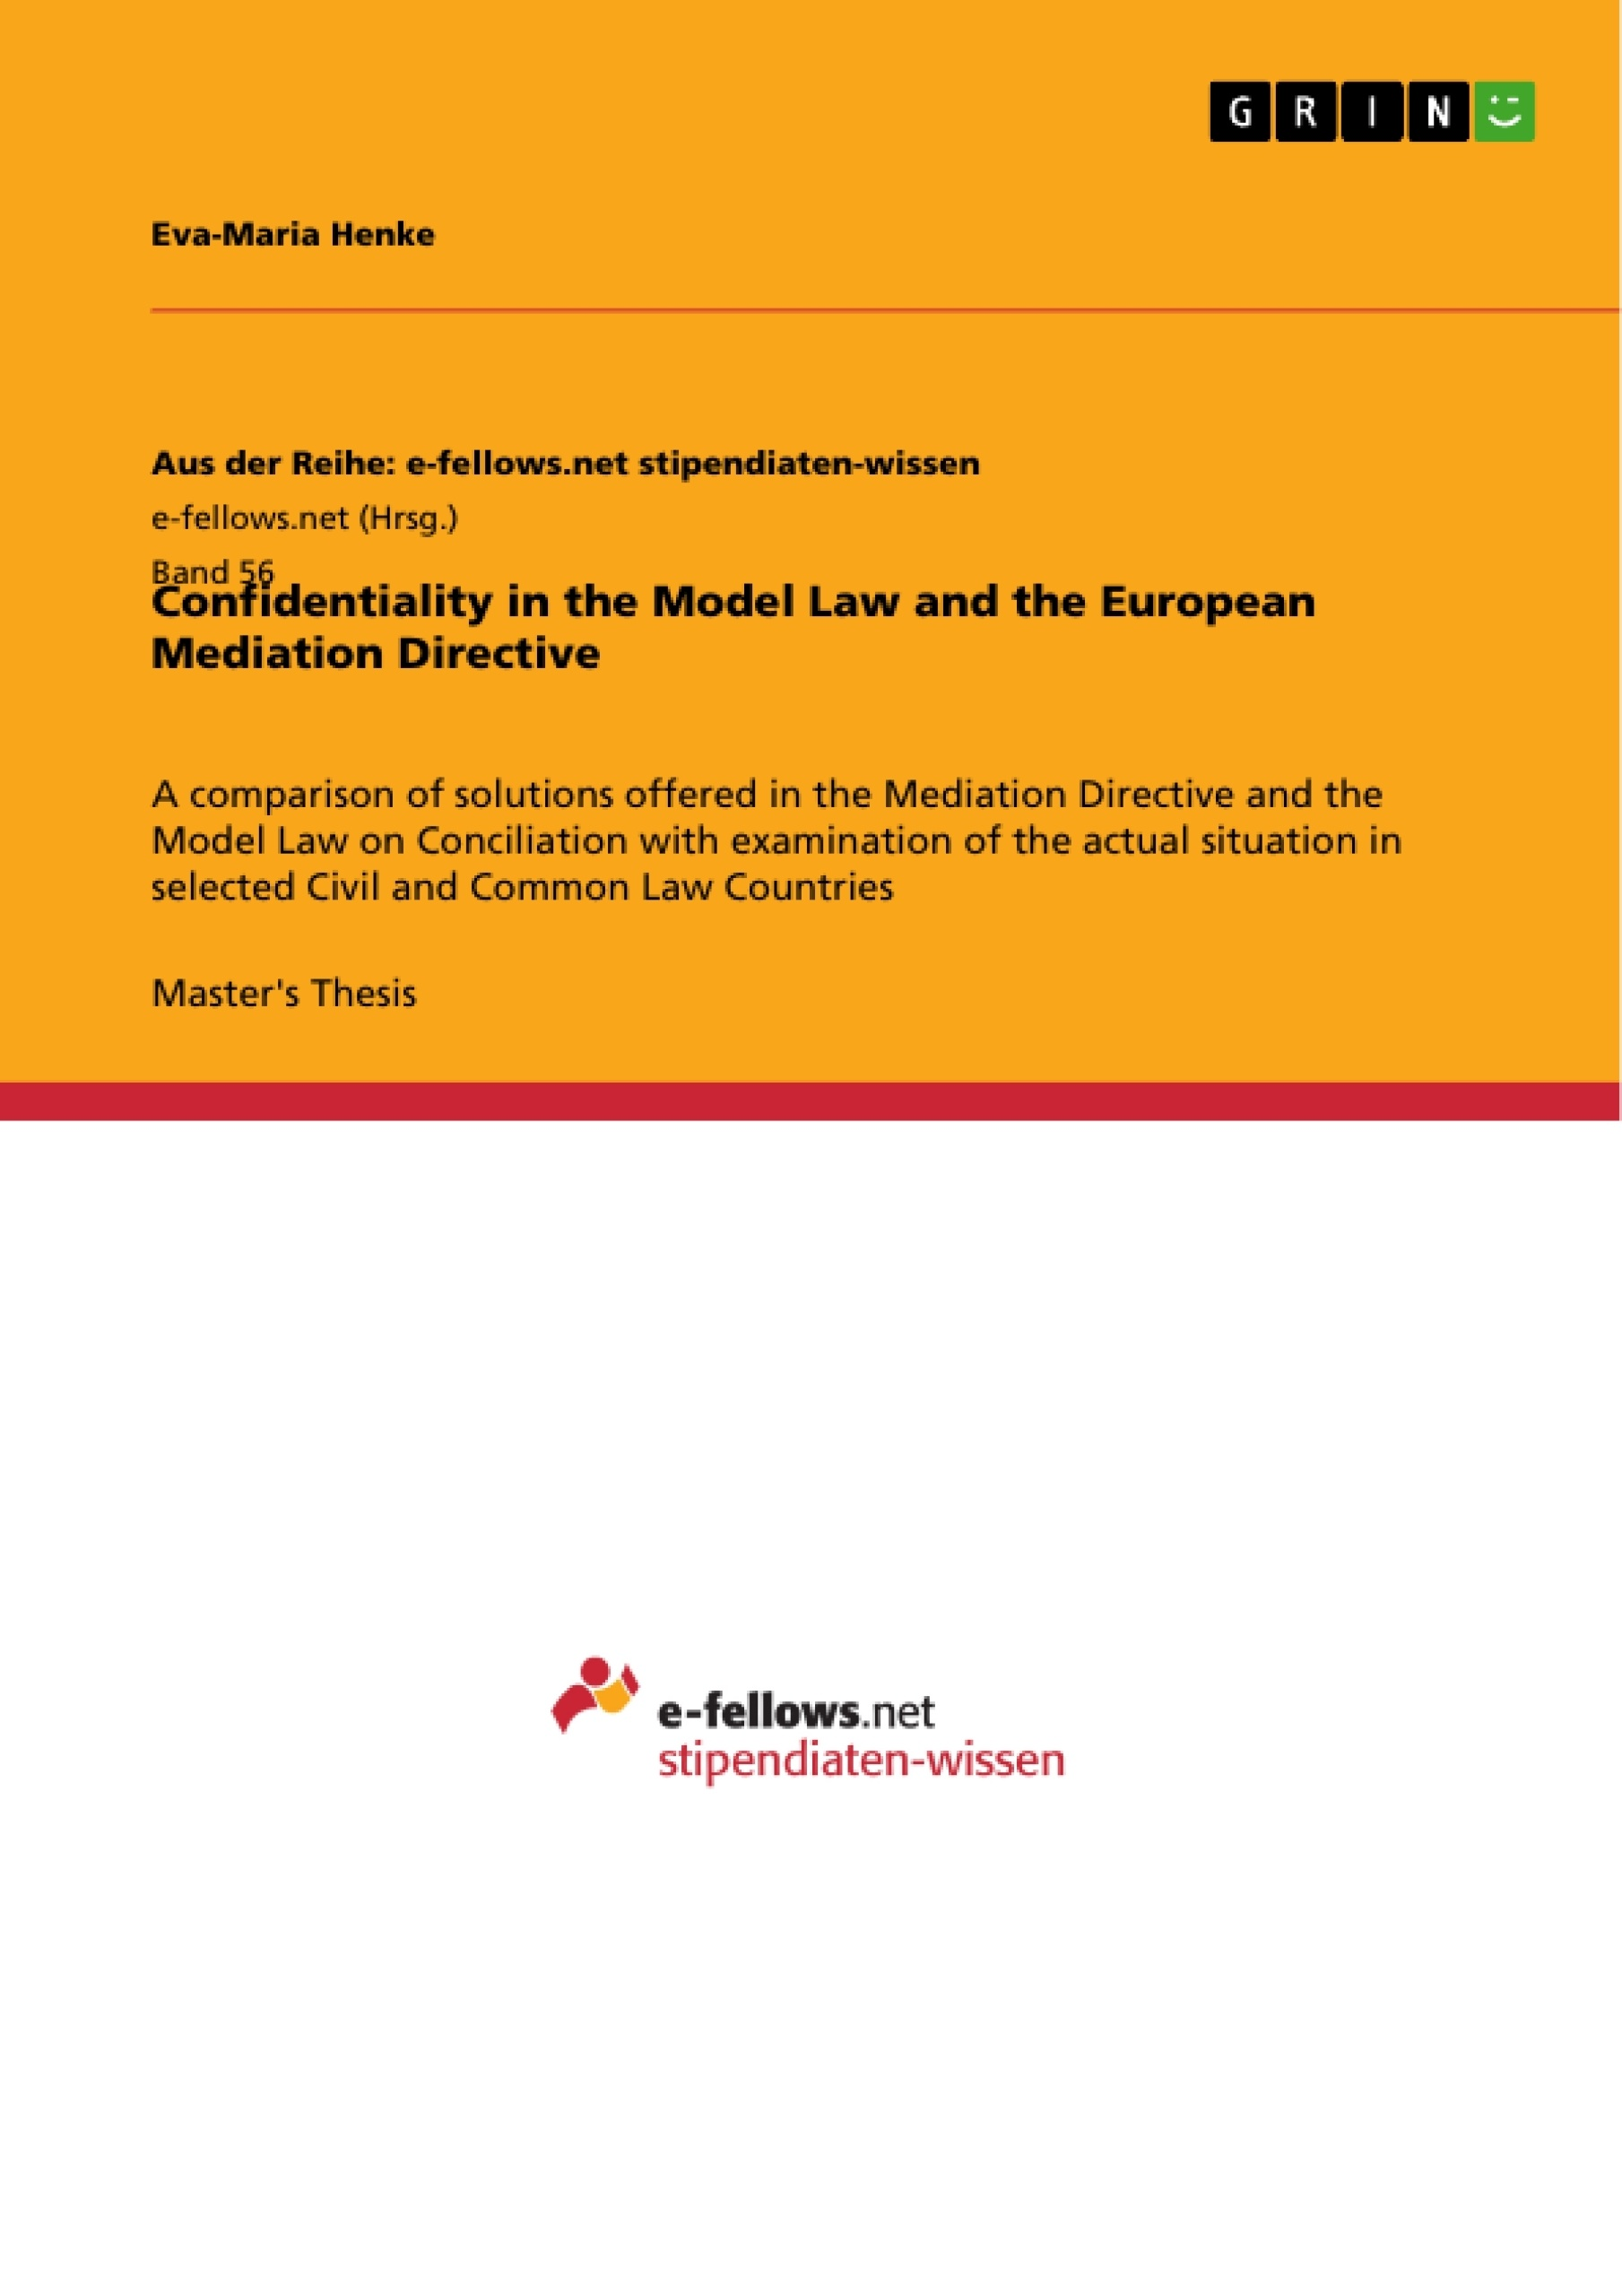 Thesis on mediation